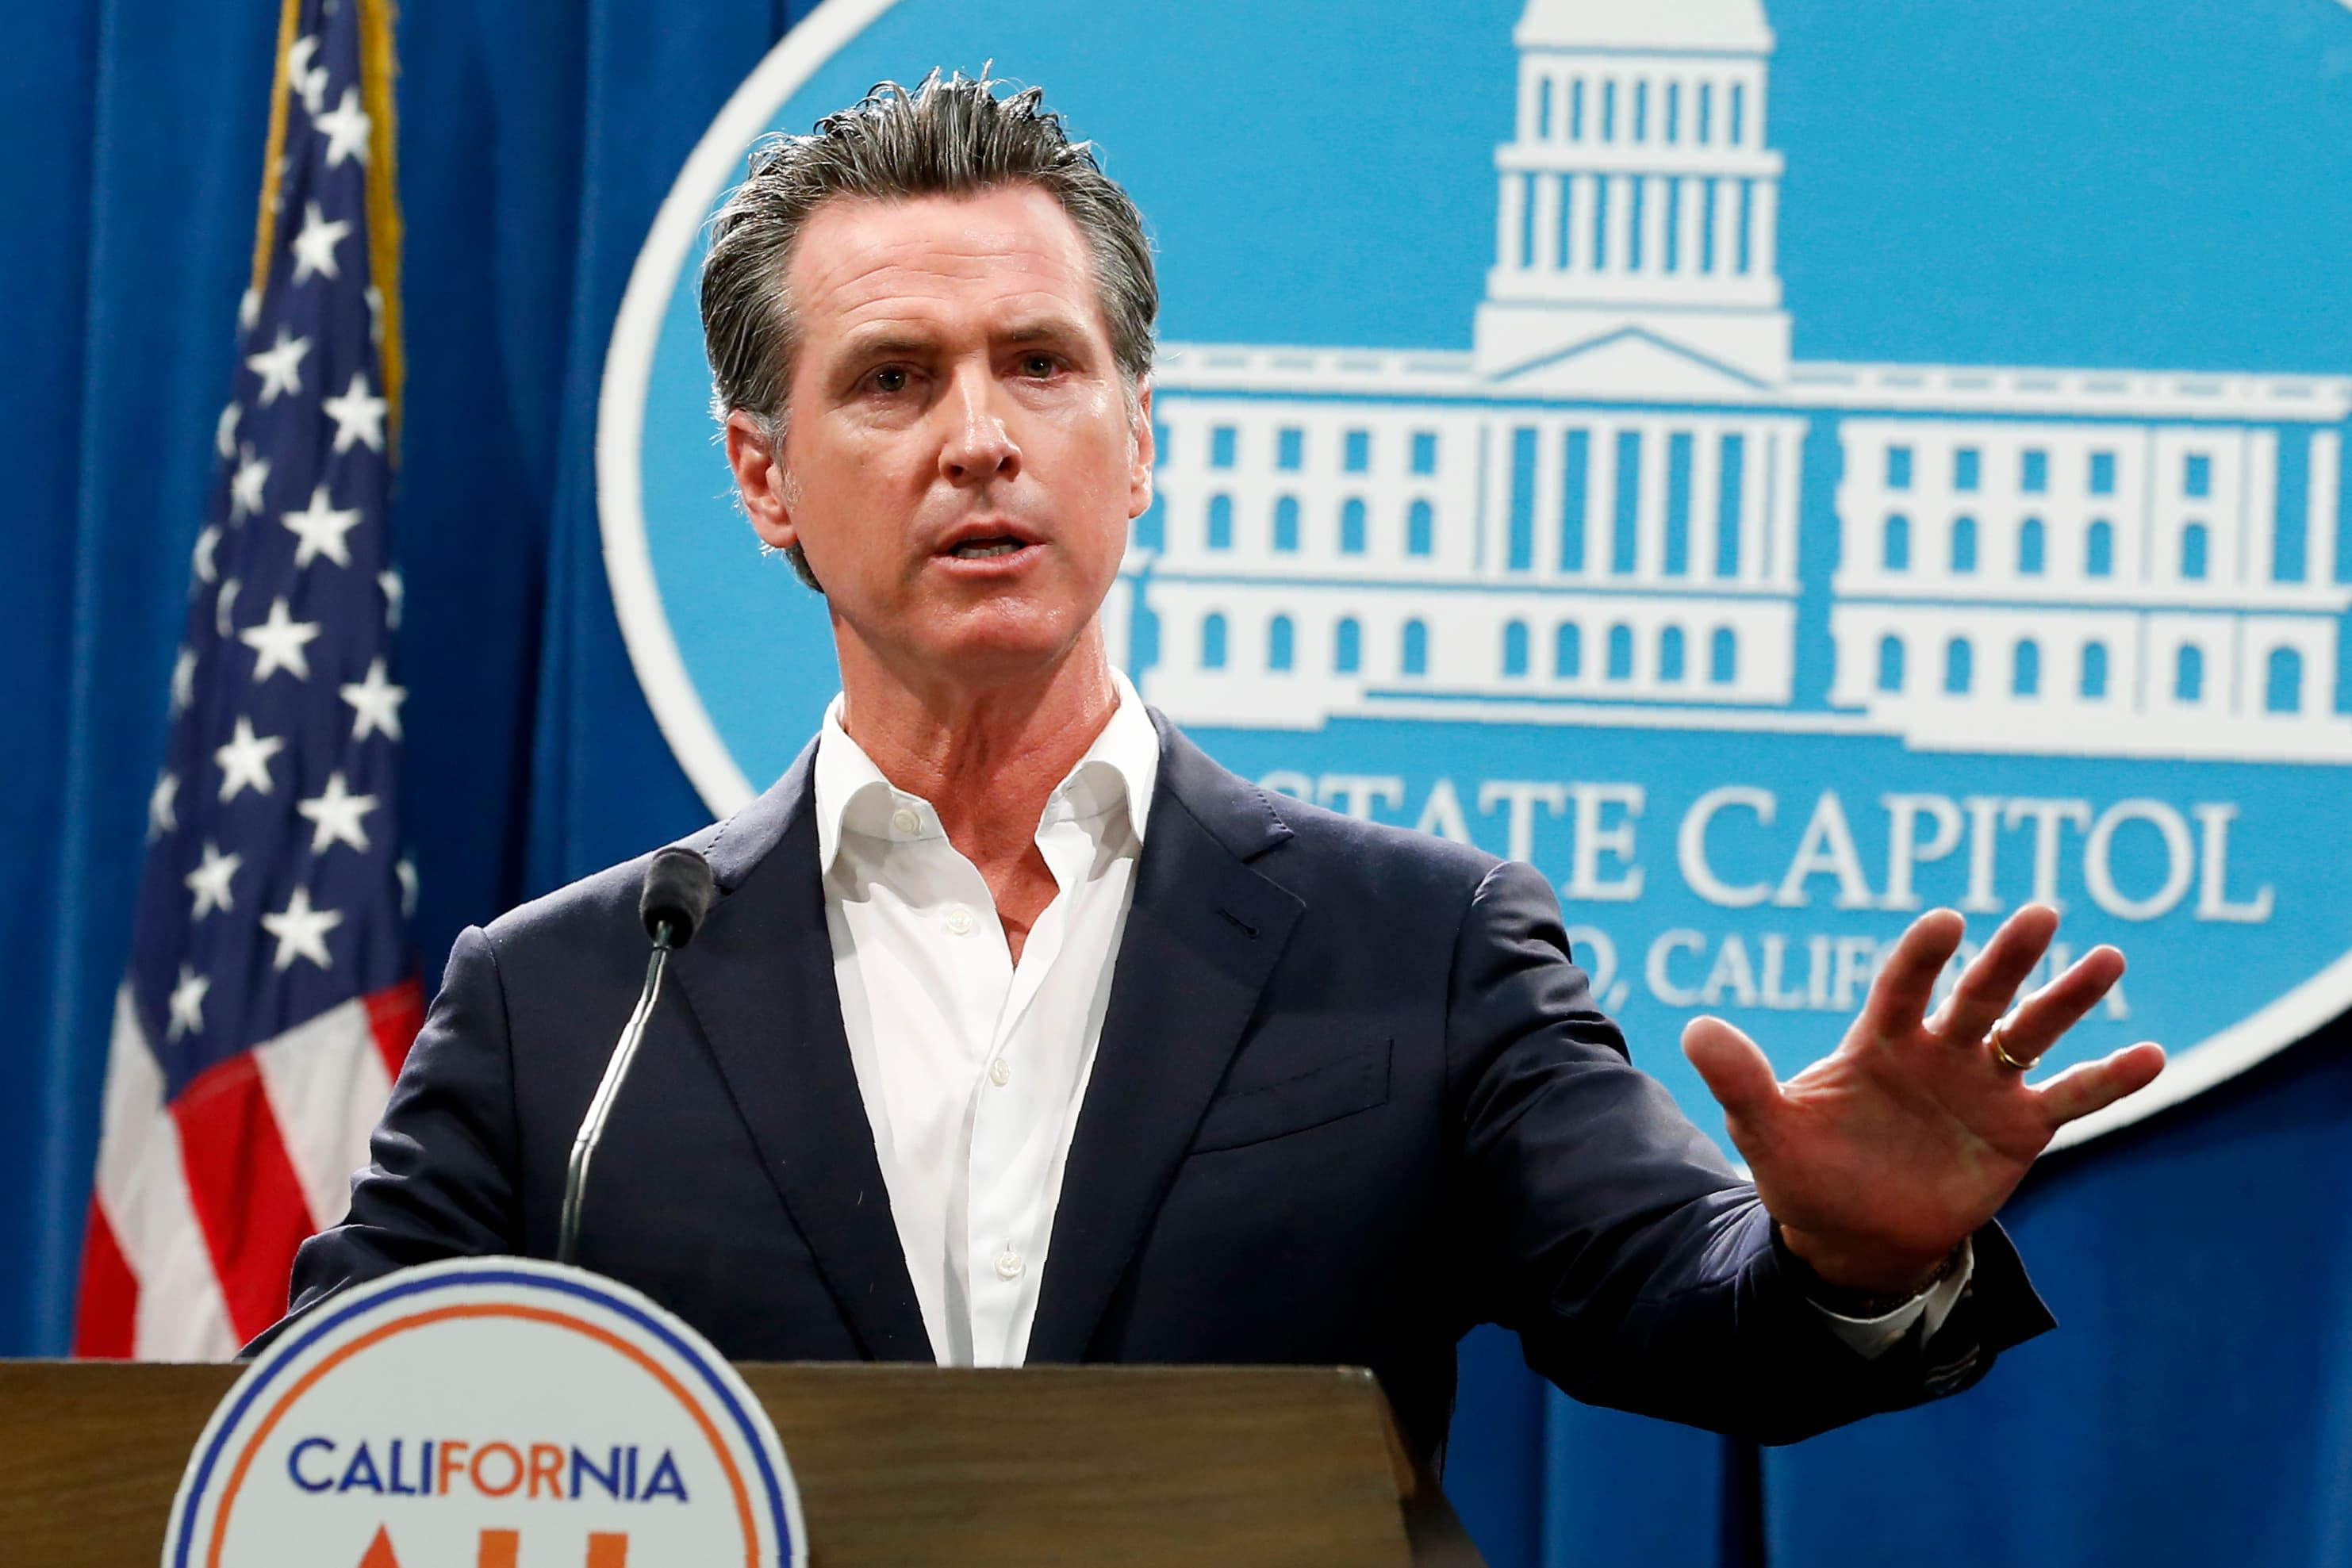 California governor calls for closure of all bars and wineries, home isolation of seniors